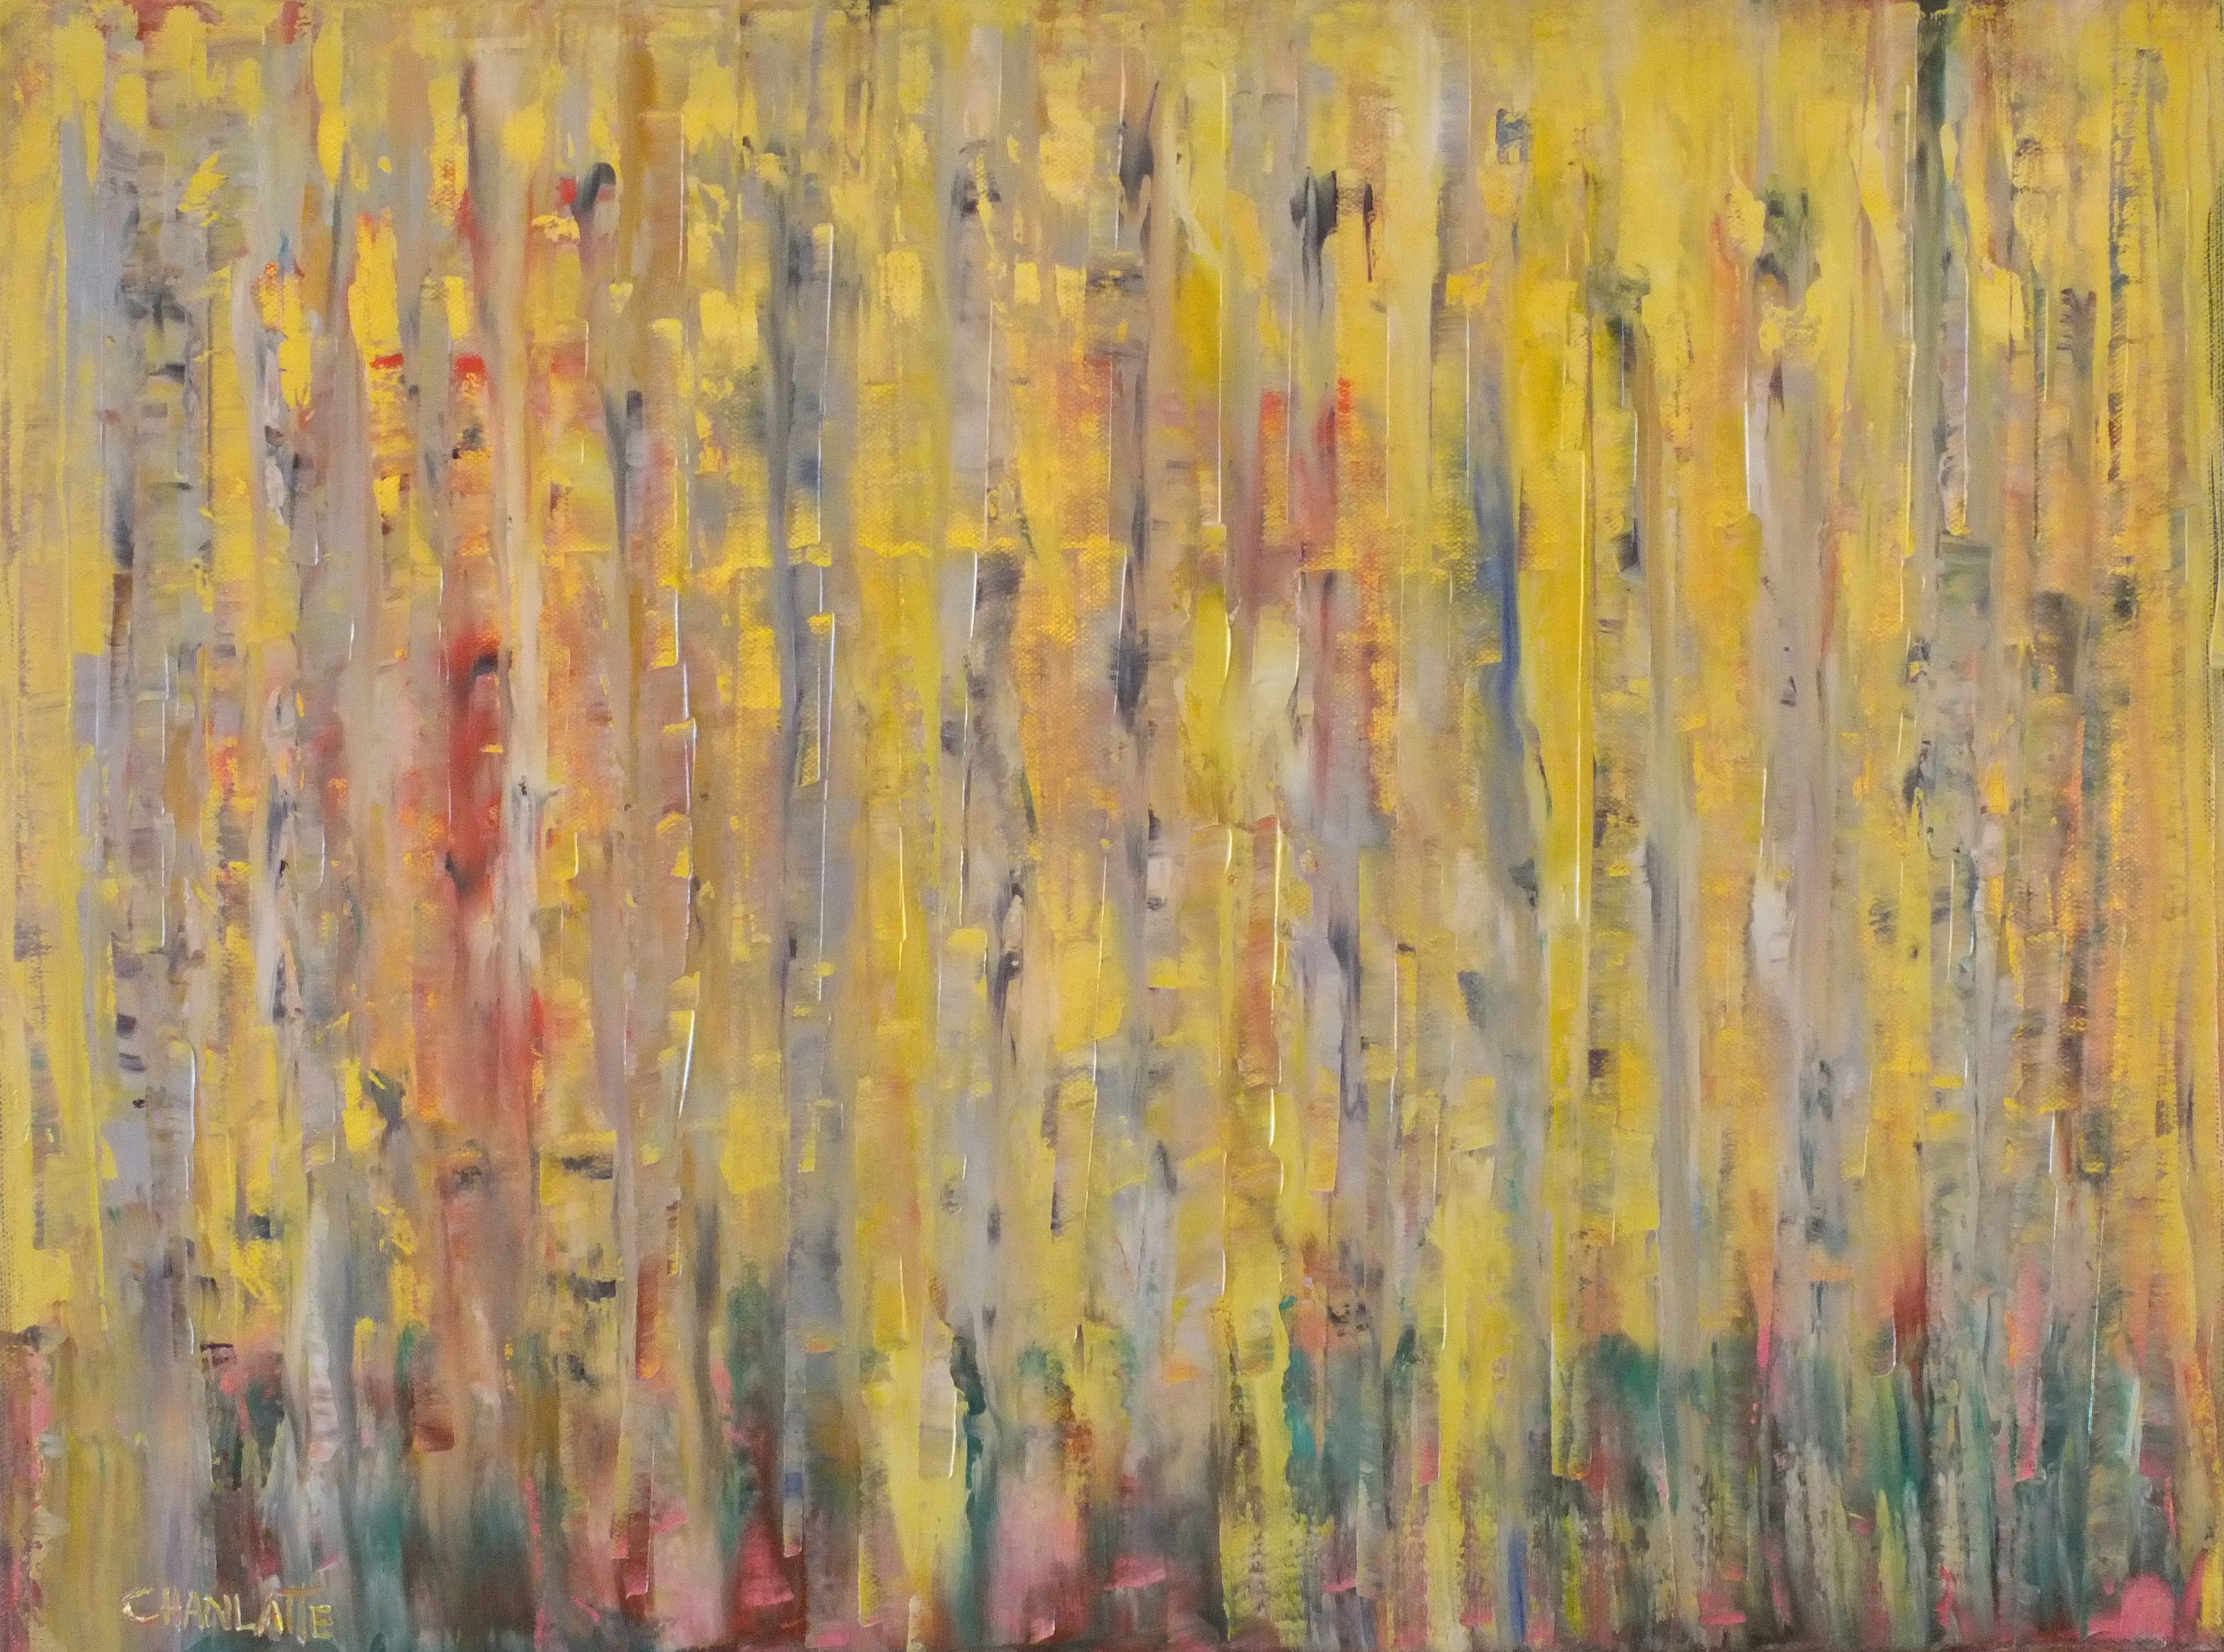 Marino Chanlatte Artwork: Abstract Aspen Trees | Original Painting ...